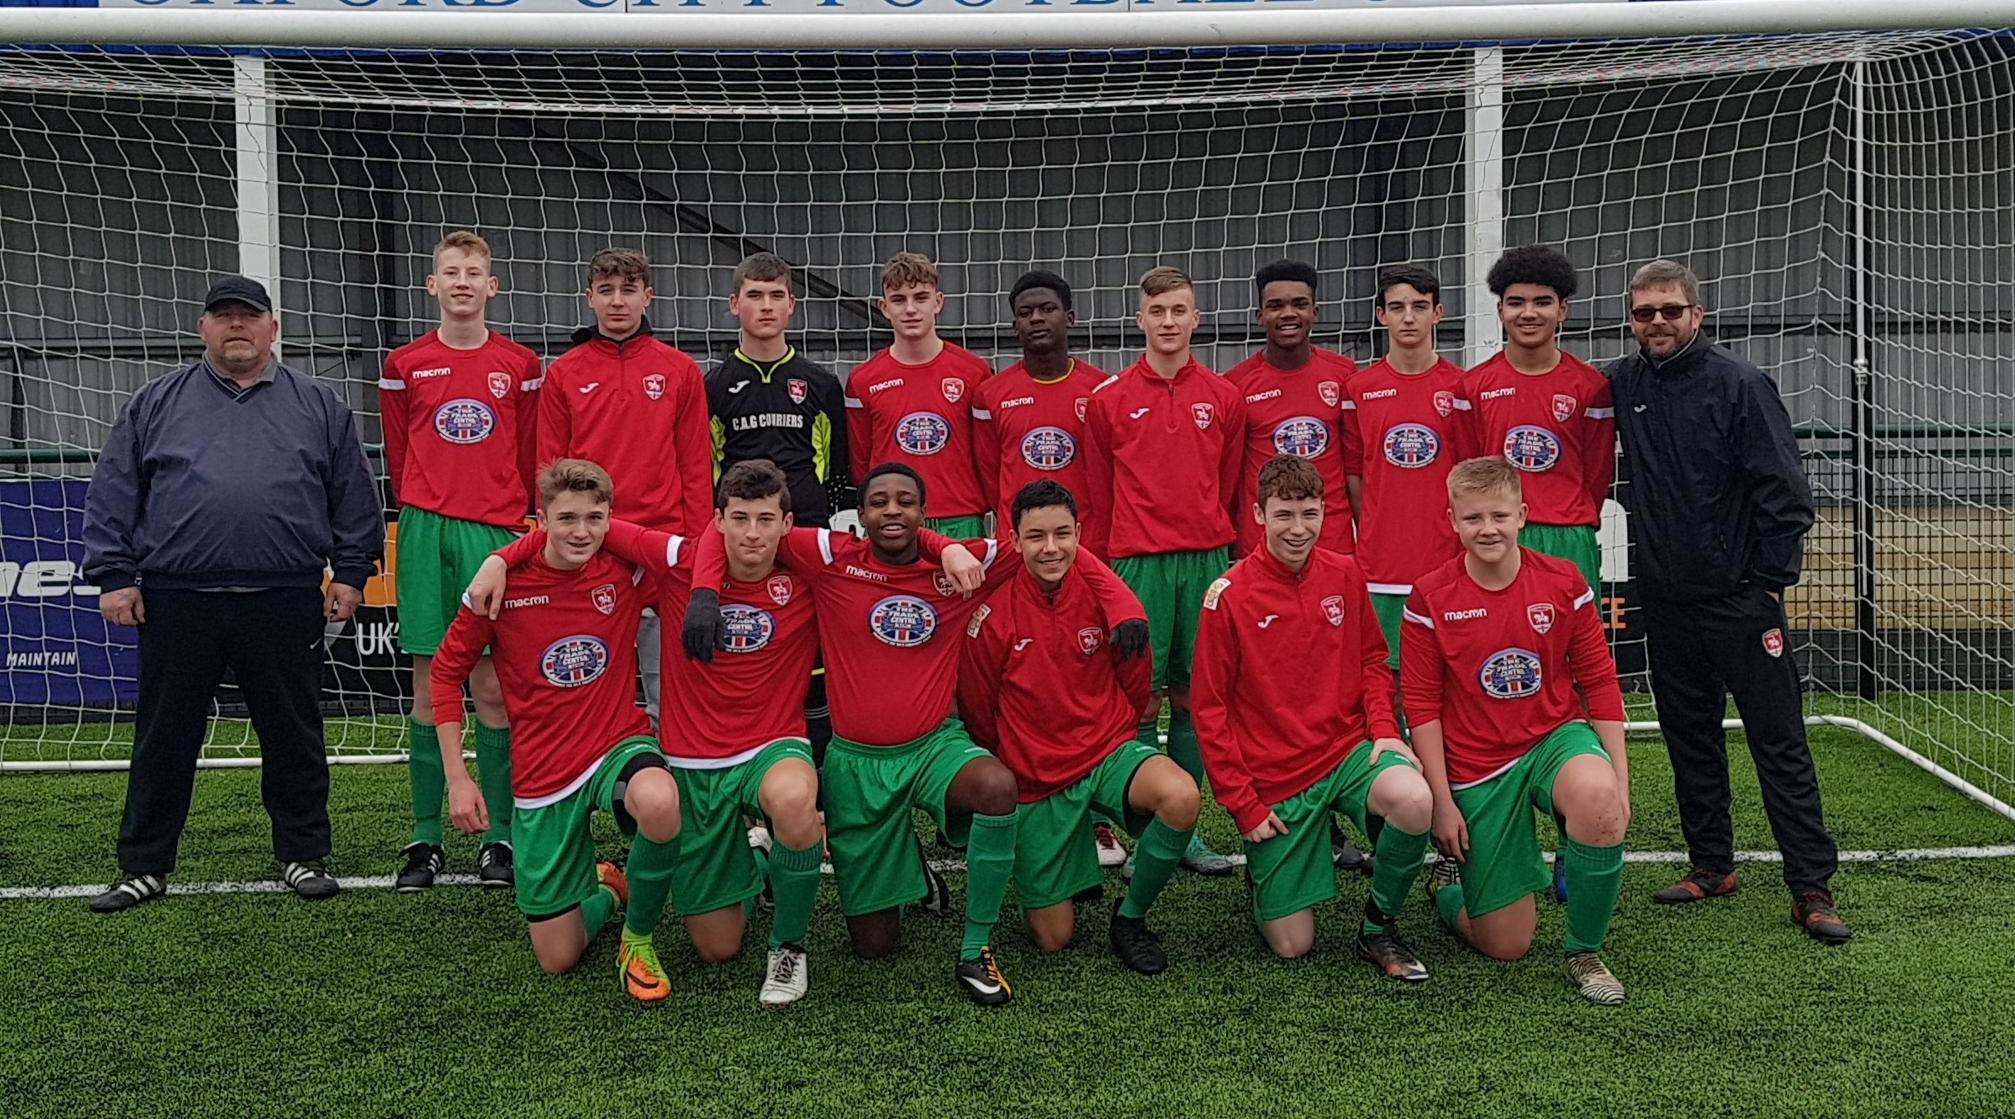 Sponsorship secured for up-and-coming Coventry football team image